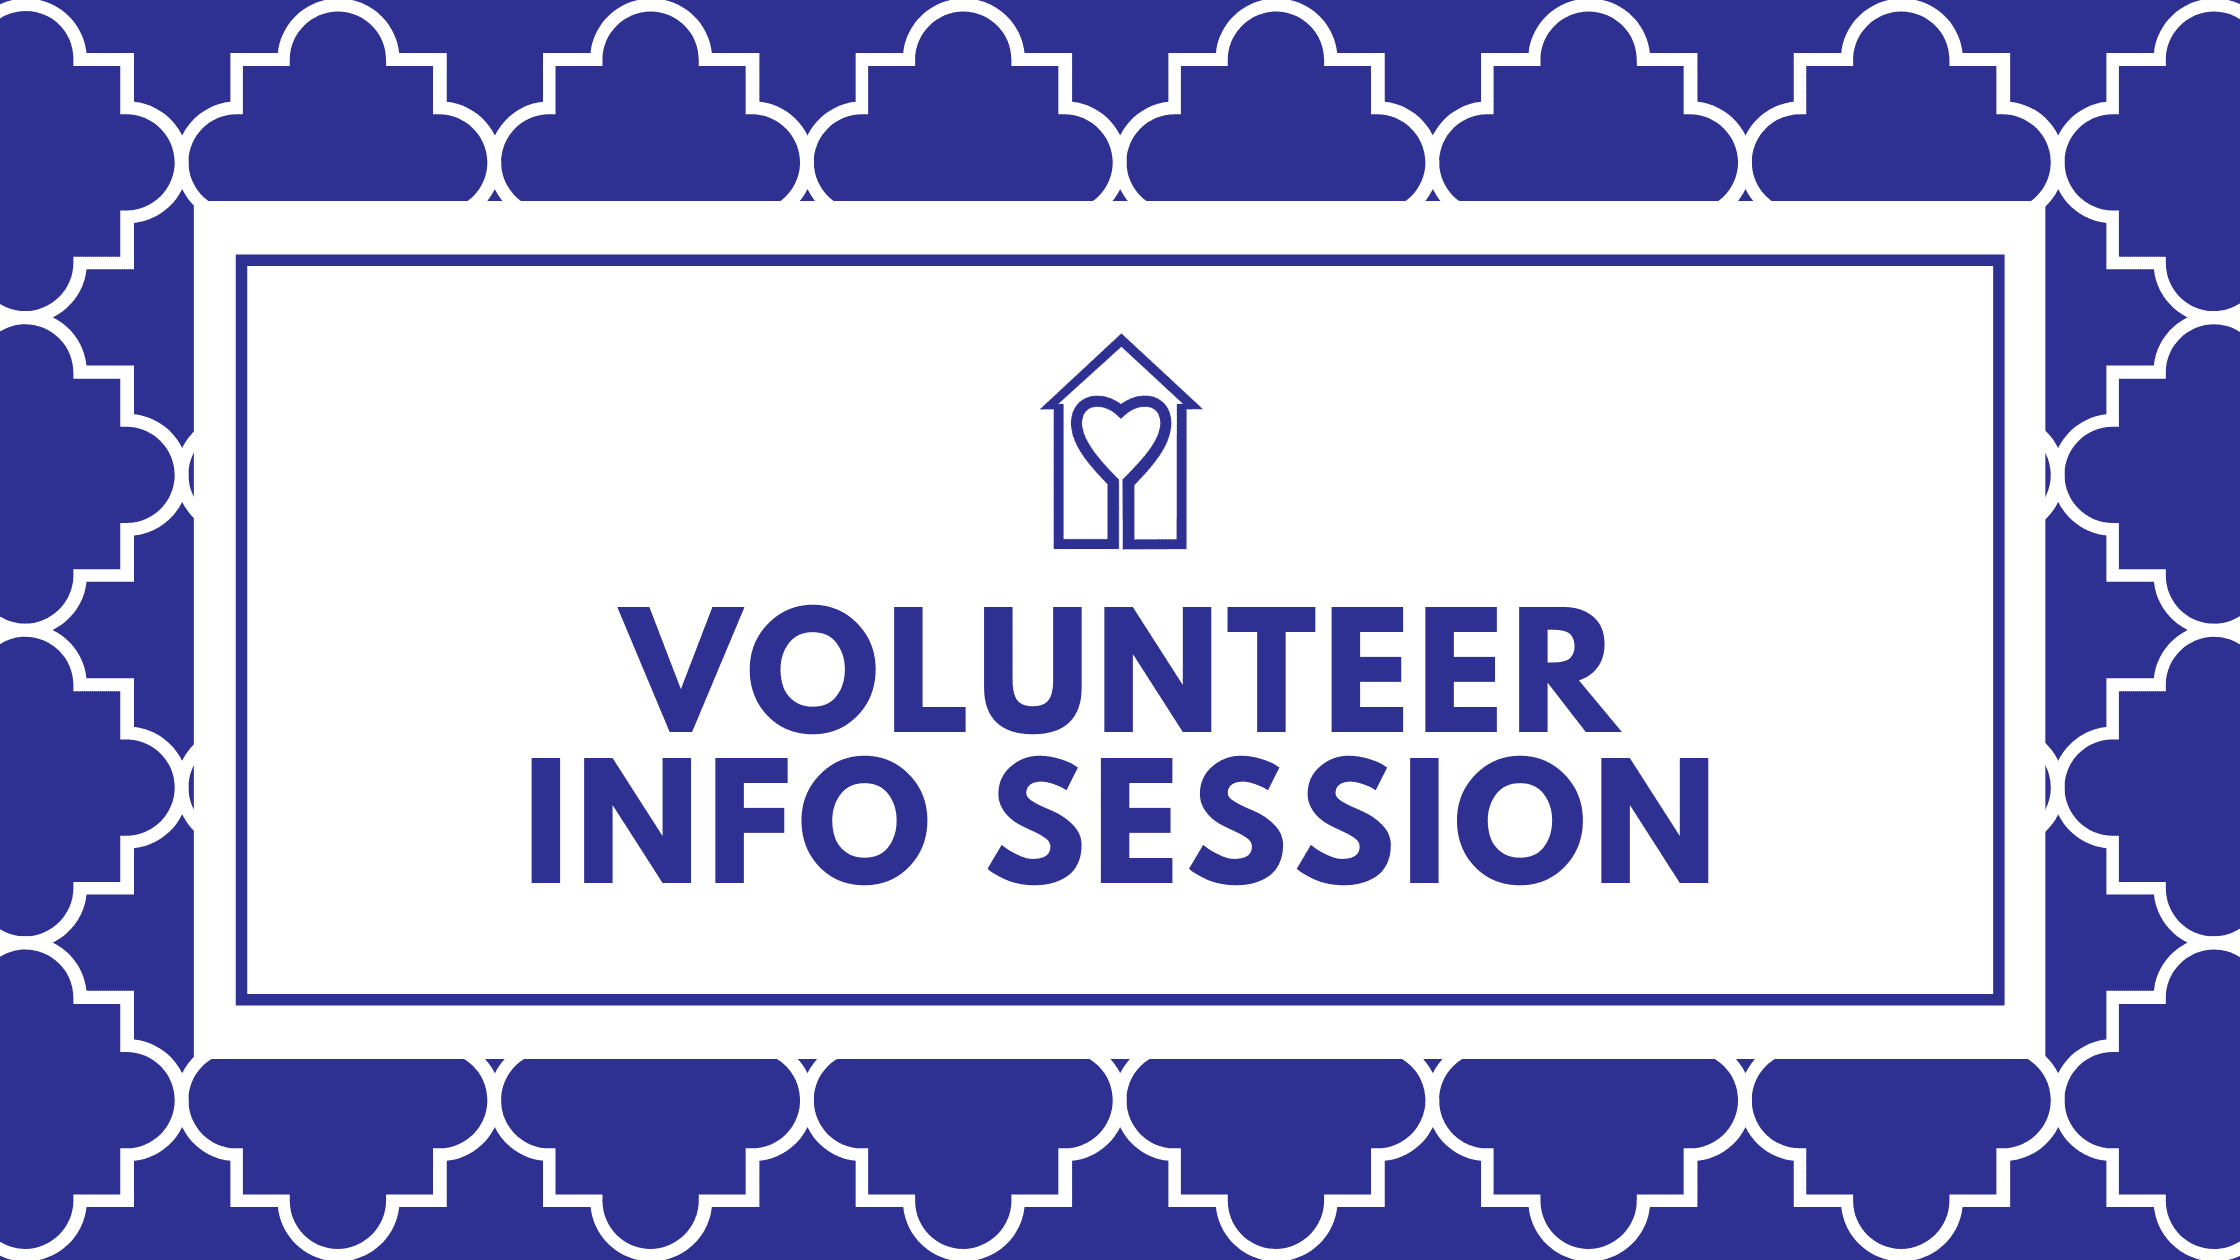 CVCJ volunteer info session